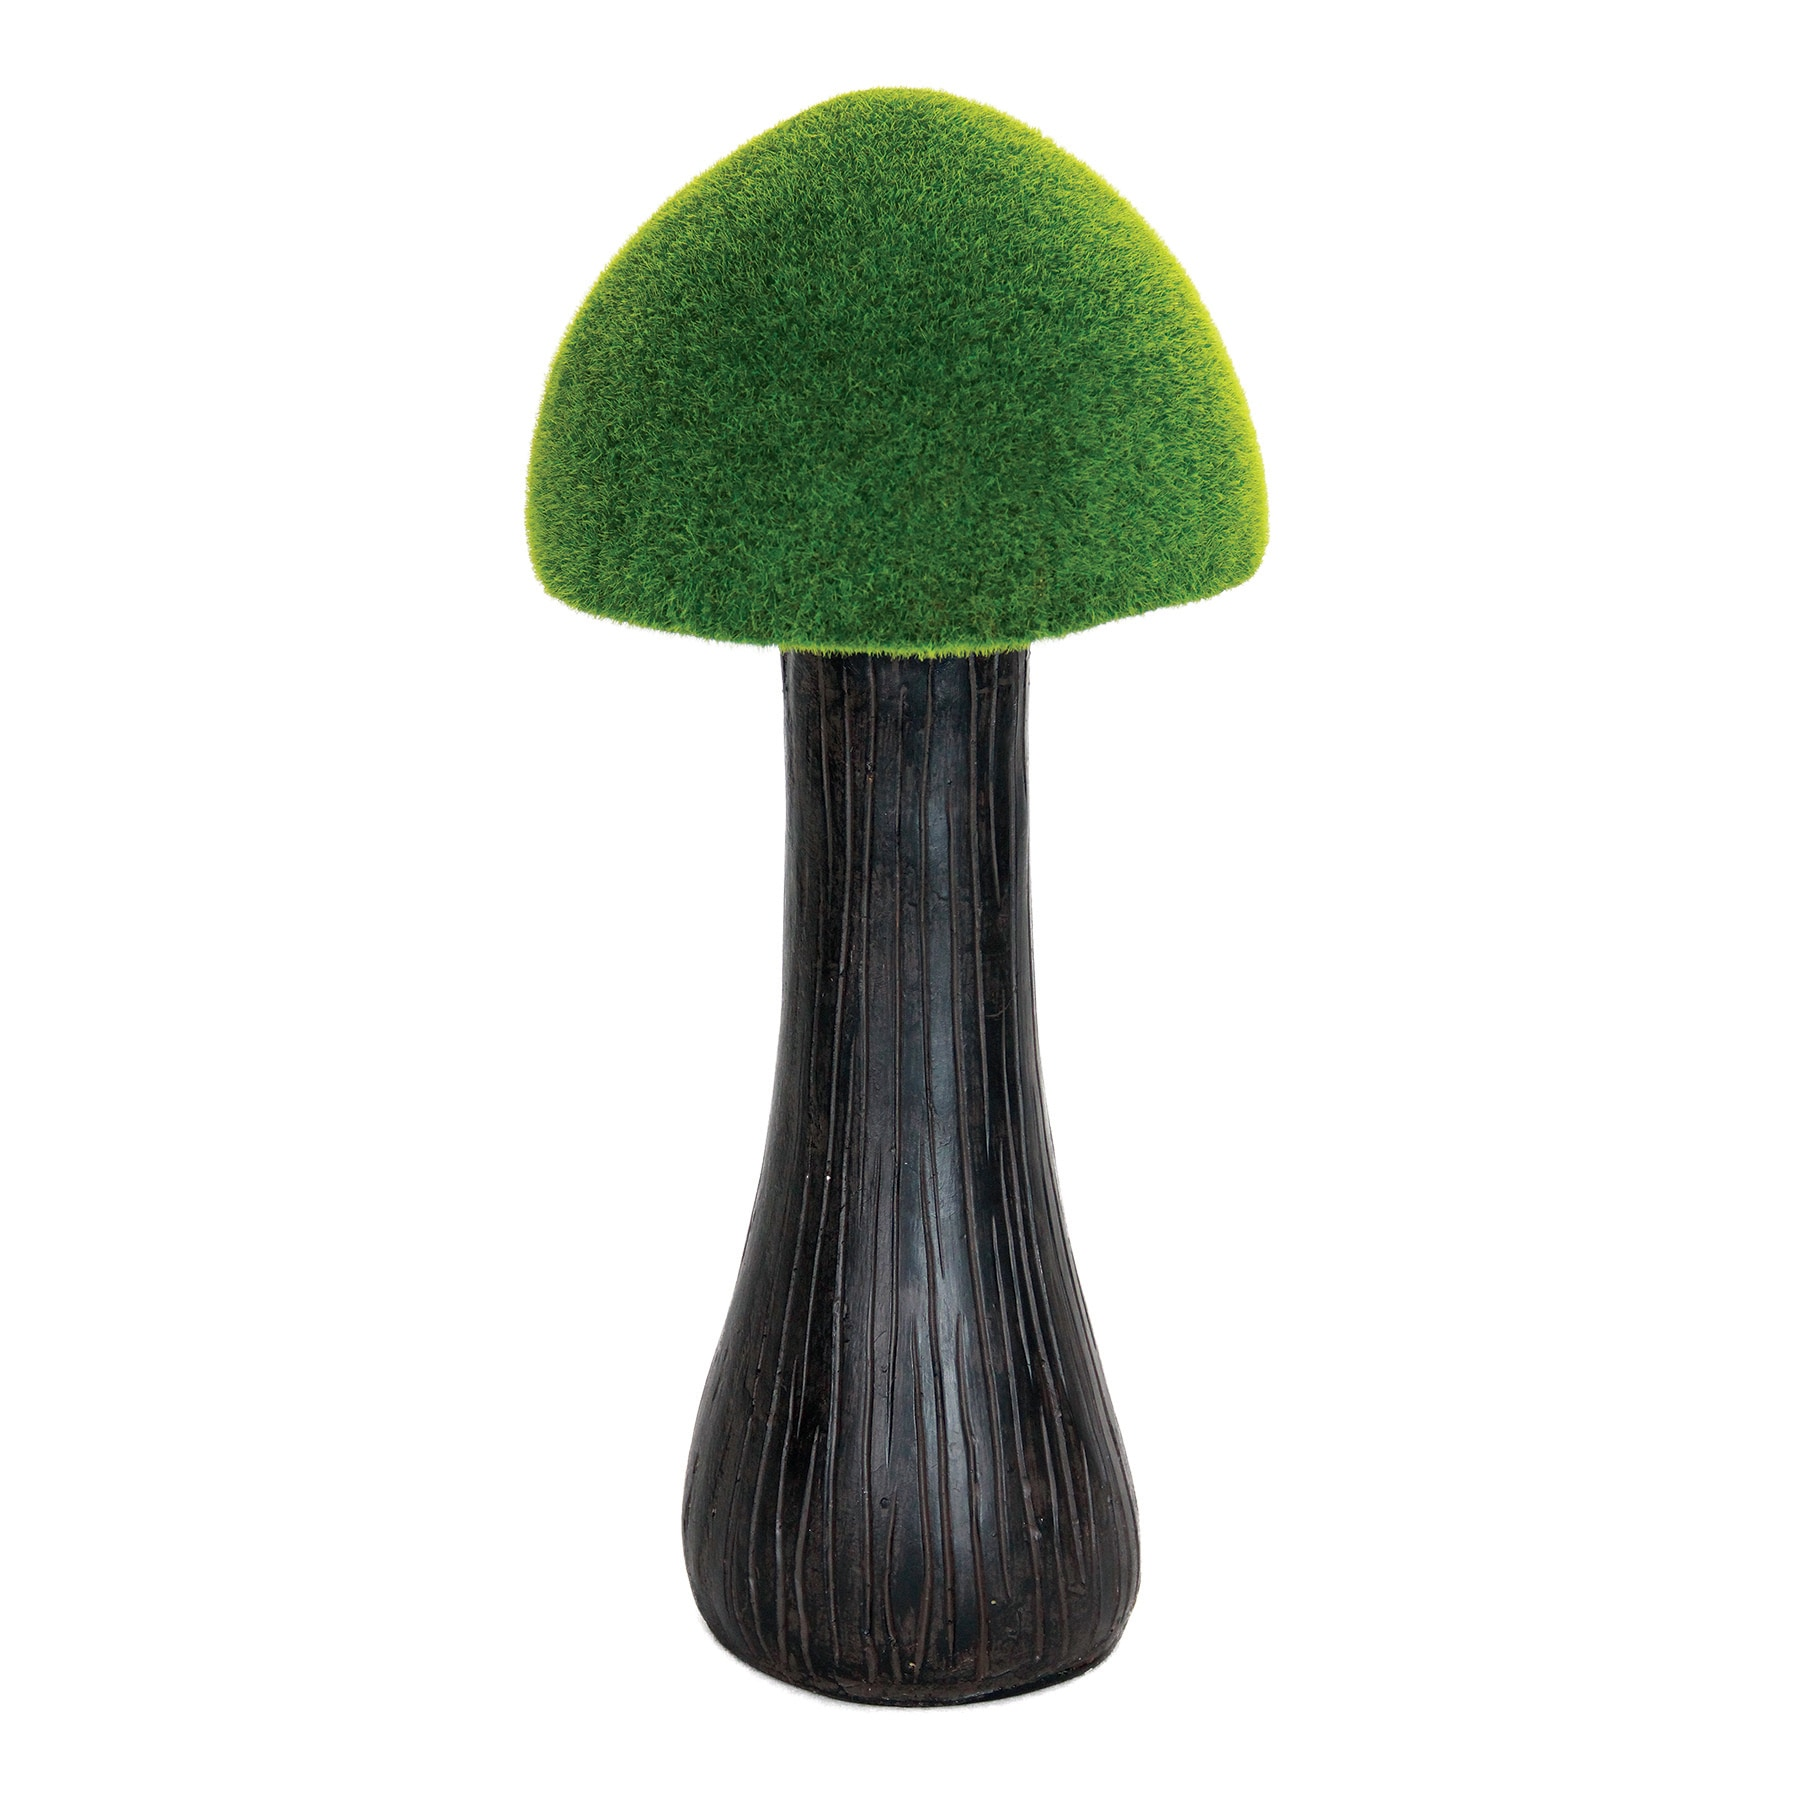 Exhart 18-inch Moss-coated Mushroom (Green) (Resin), Outd...